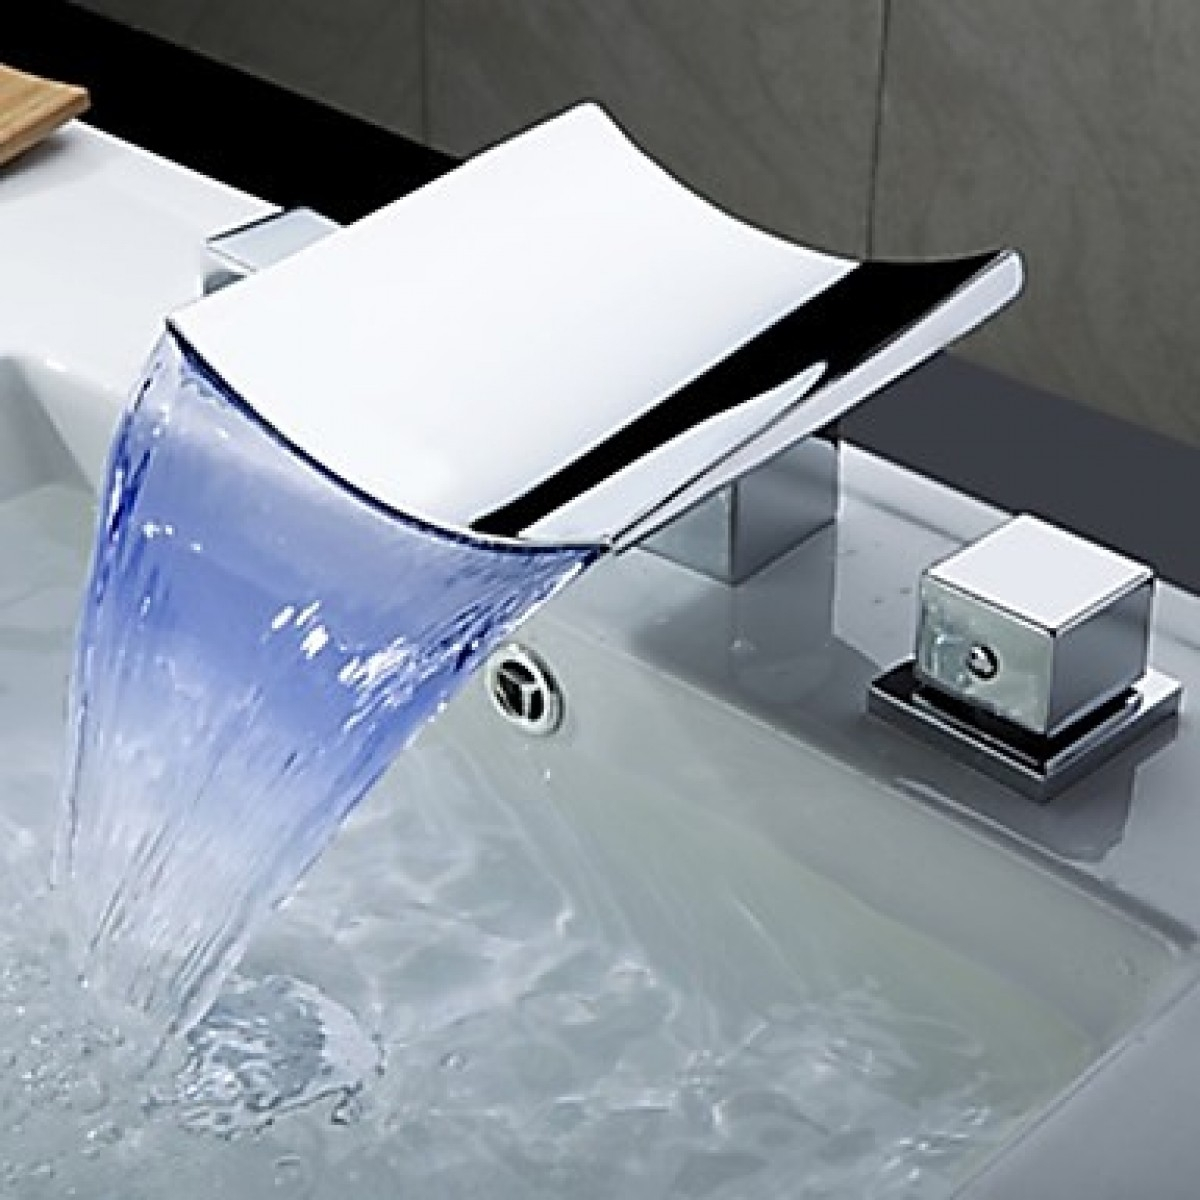 Ideas, led waterfall faucets for vessel sinks led waterfall faucets for vessel sinks bathroom fabulous waterfall faucet for bathroom 1200 x 1200  .